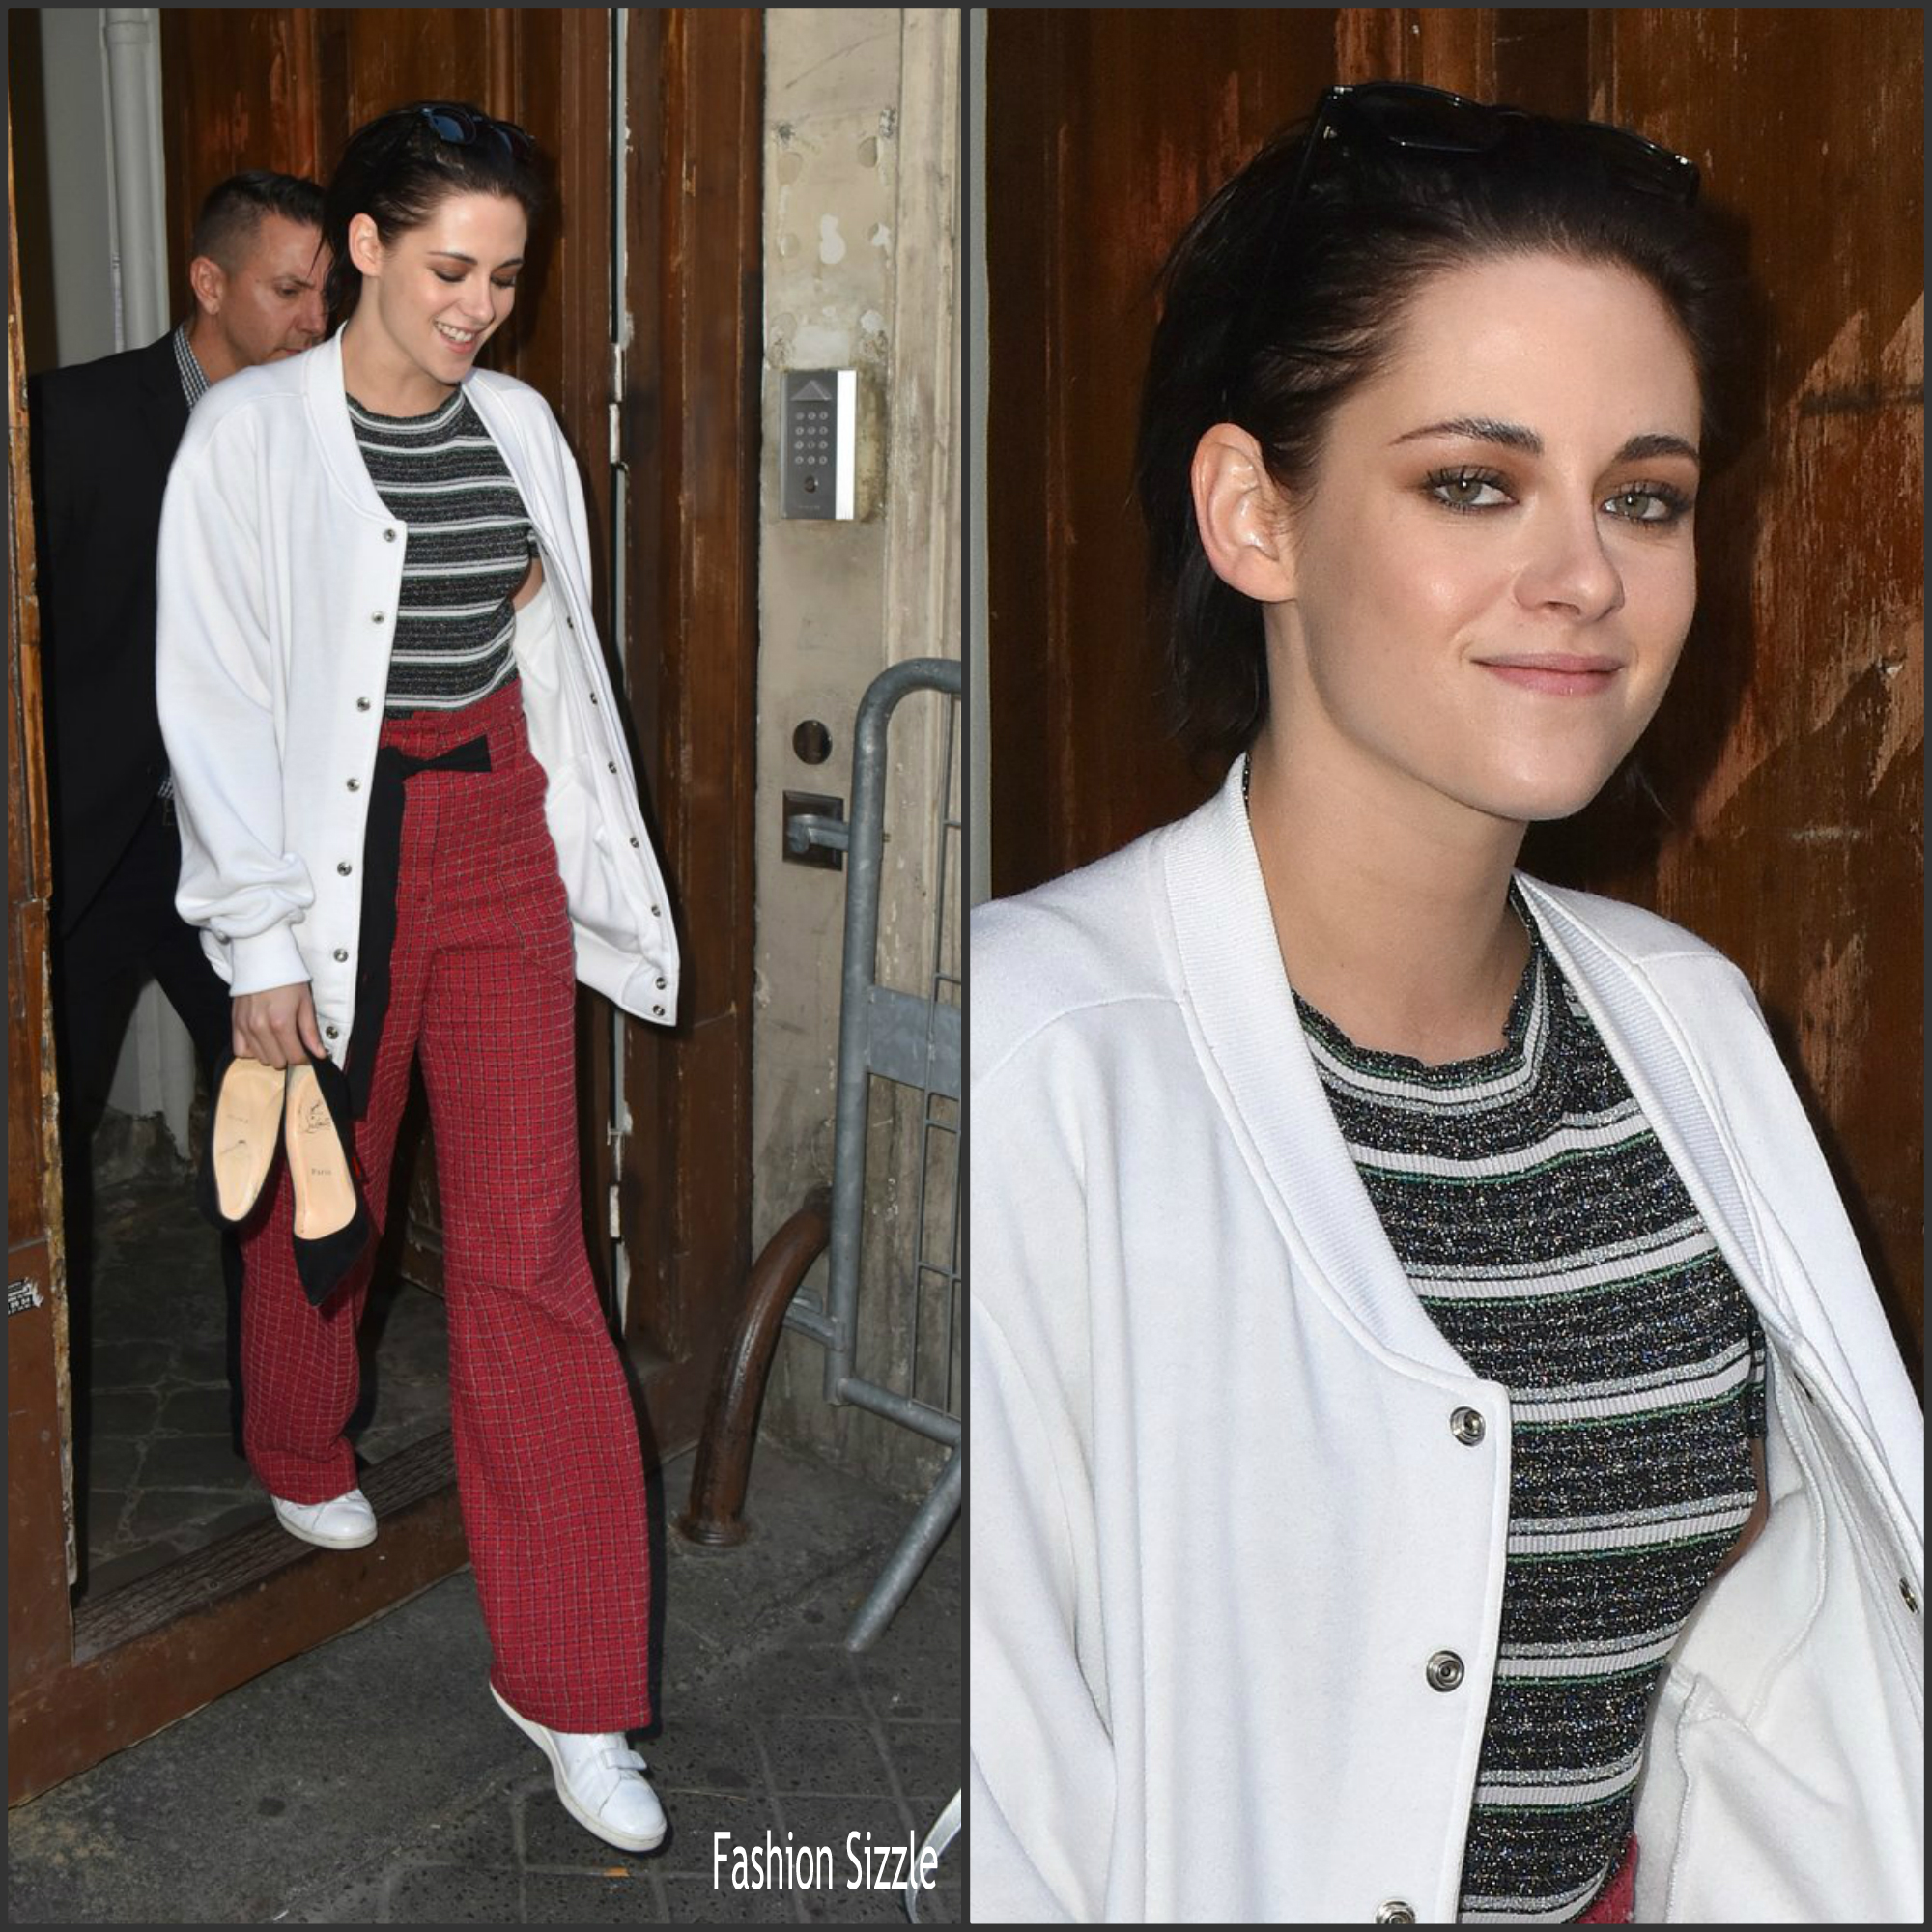 kristen stewart in chanel promoting personal shopper on c vous 39 tv in paris fashion sizzle. Black Bedroom Furniture Sets. Home Design Ideas